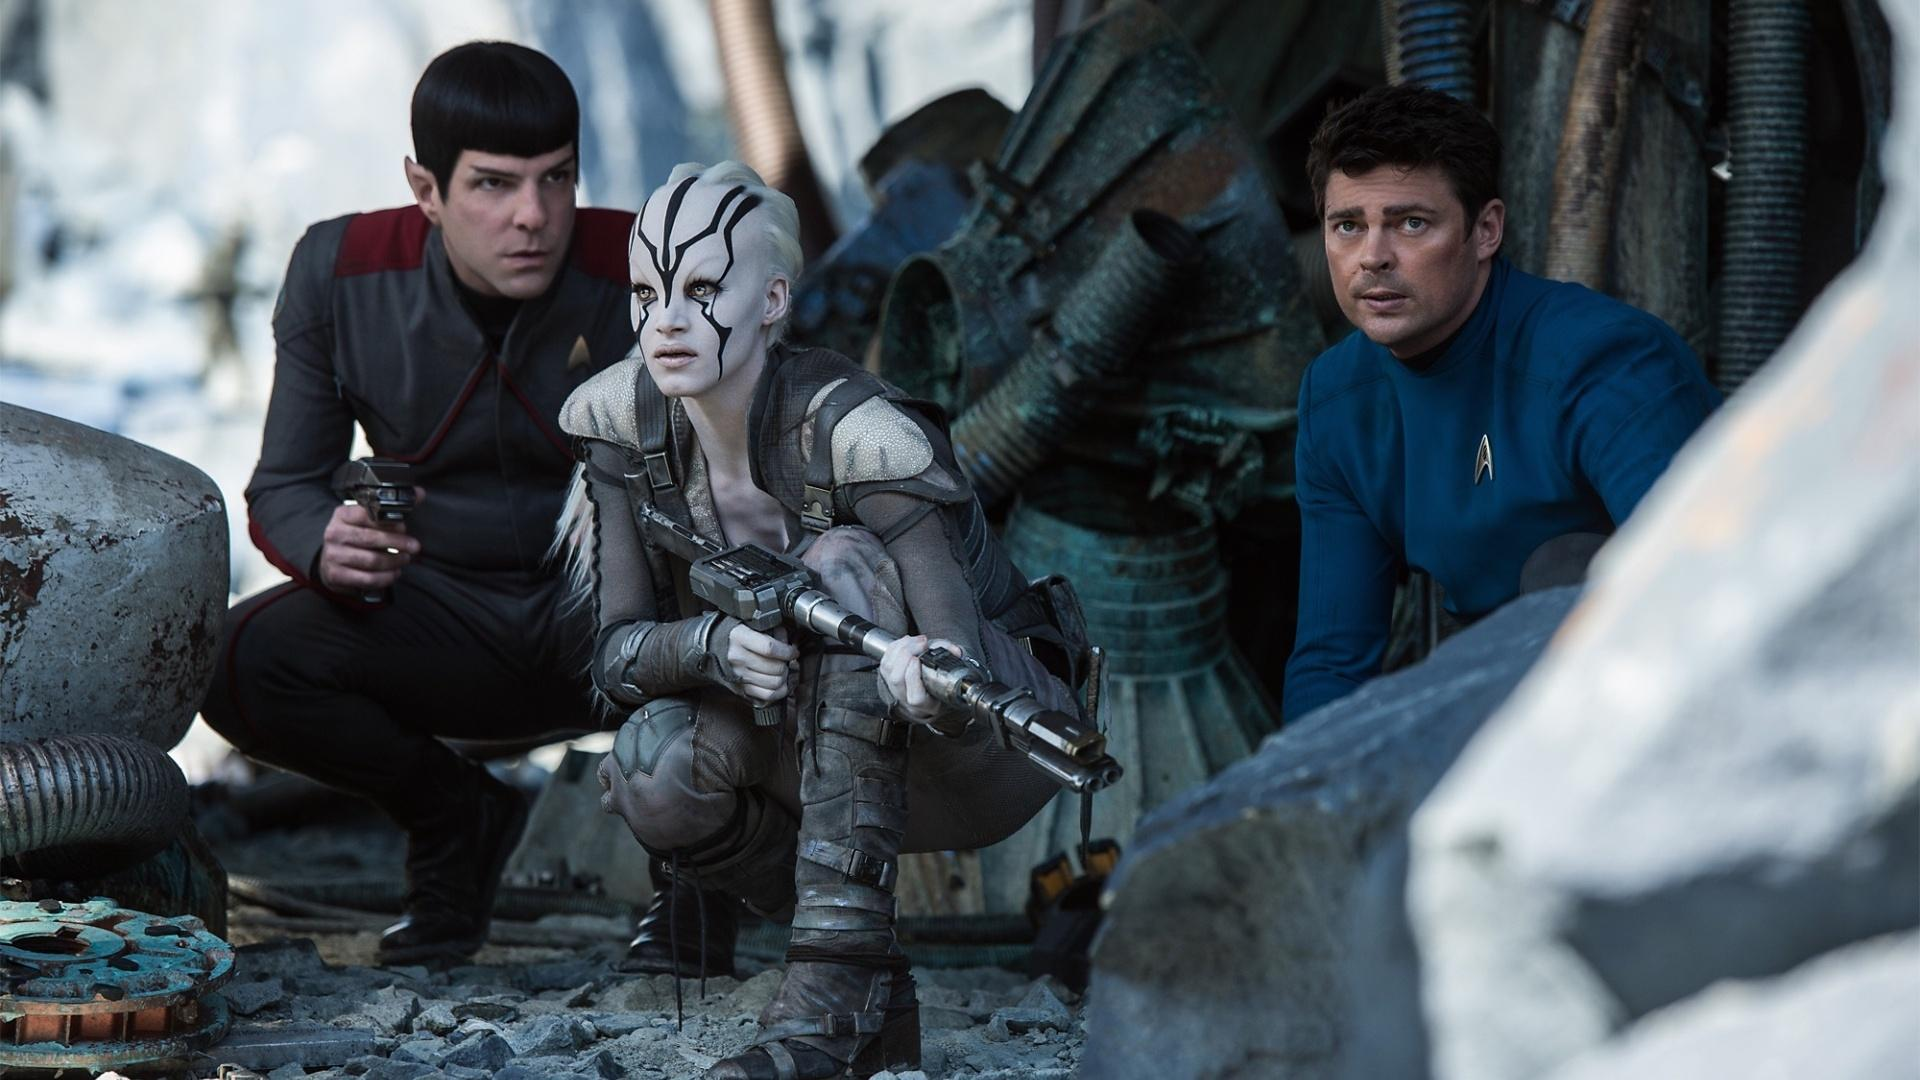 star-trek-beyond-imagen-movie-still-12092016